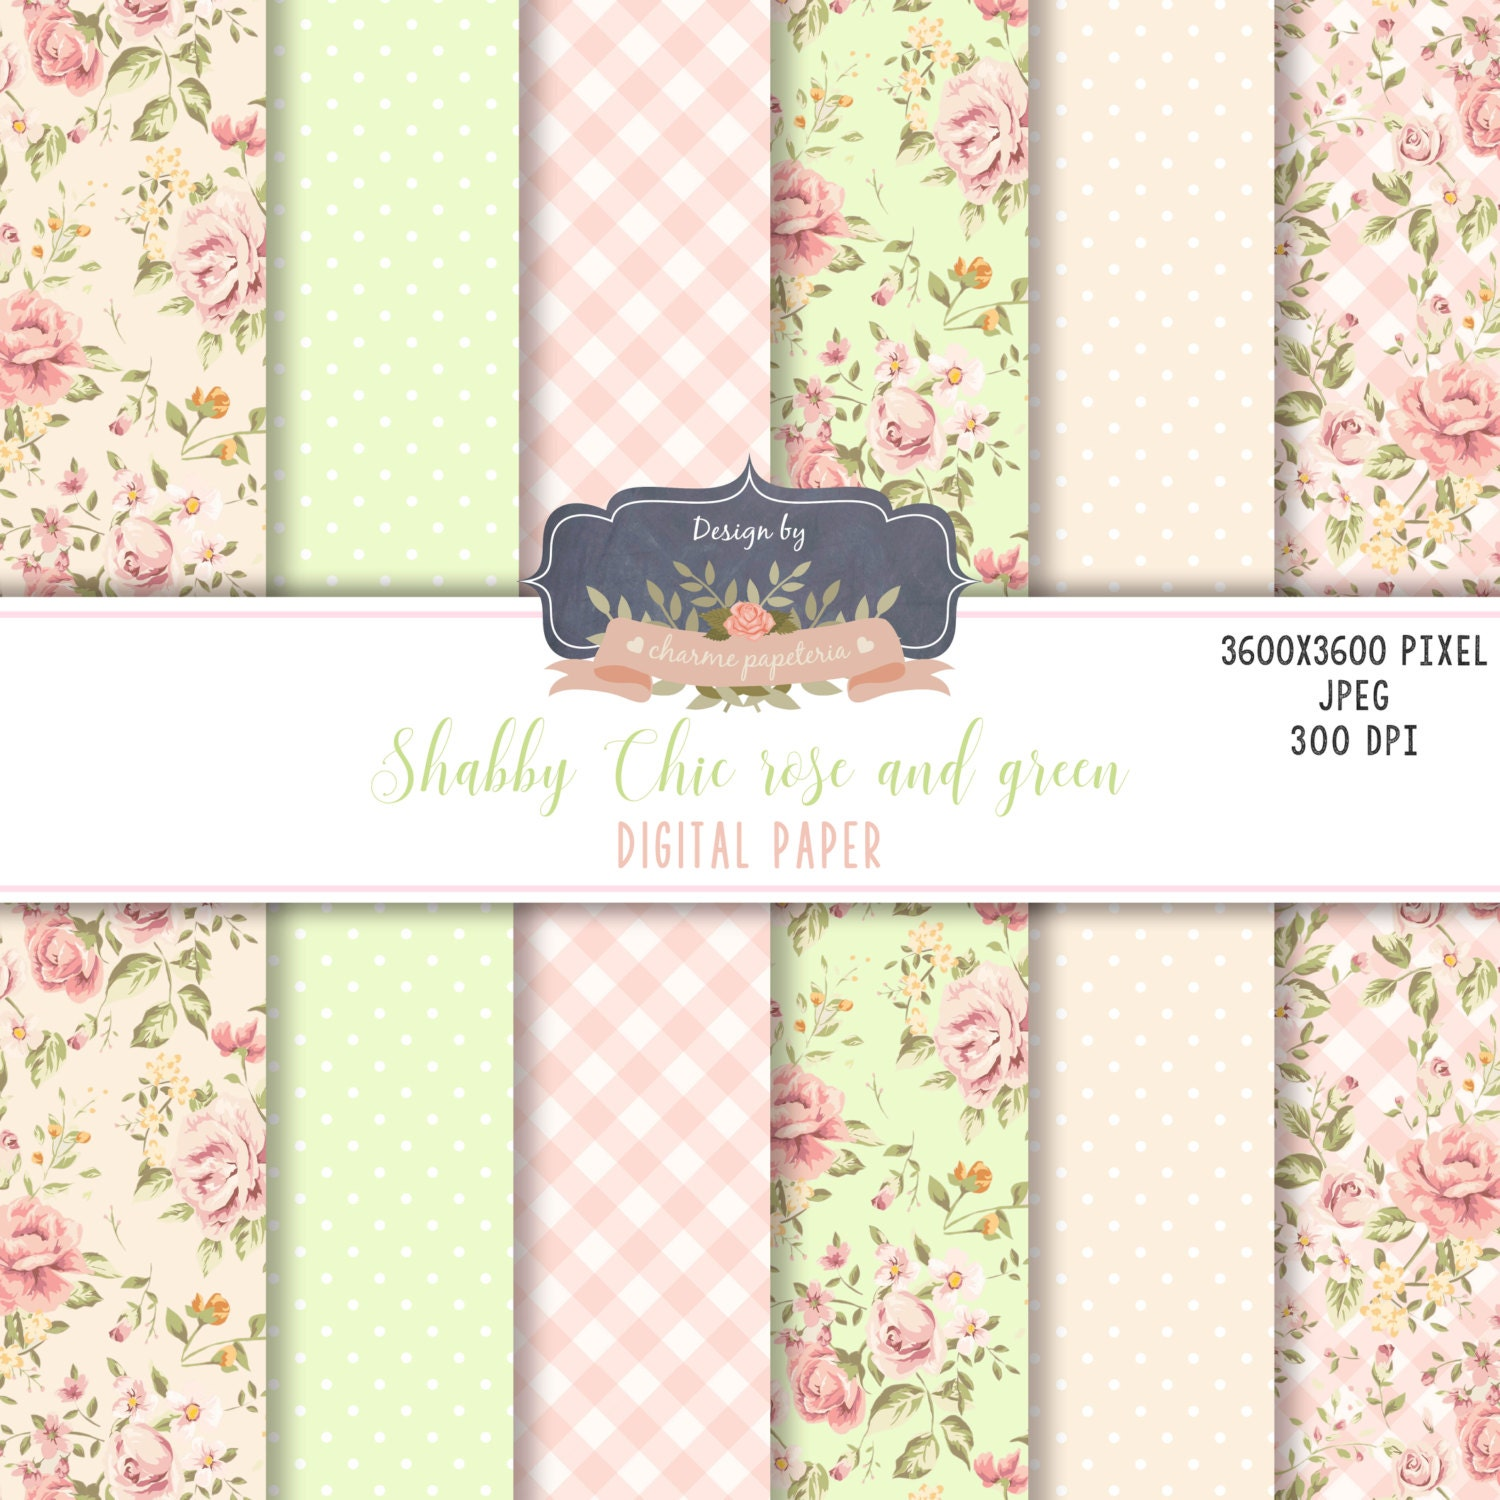 Sale Floral Shabby Chic Digital Paper Pack Cottage Paper Floral Green And Pink Floral Green Floral Pattern Scrapbooking Paper Flowers